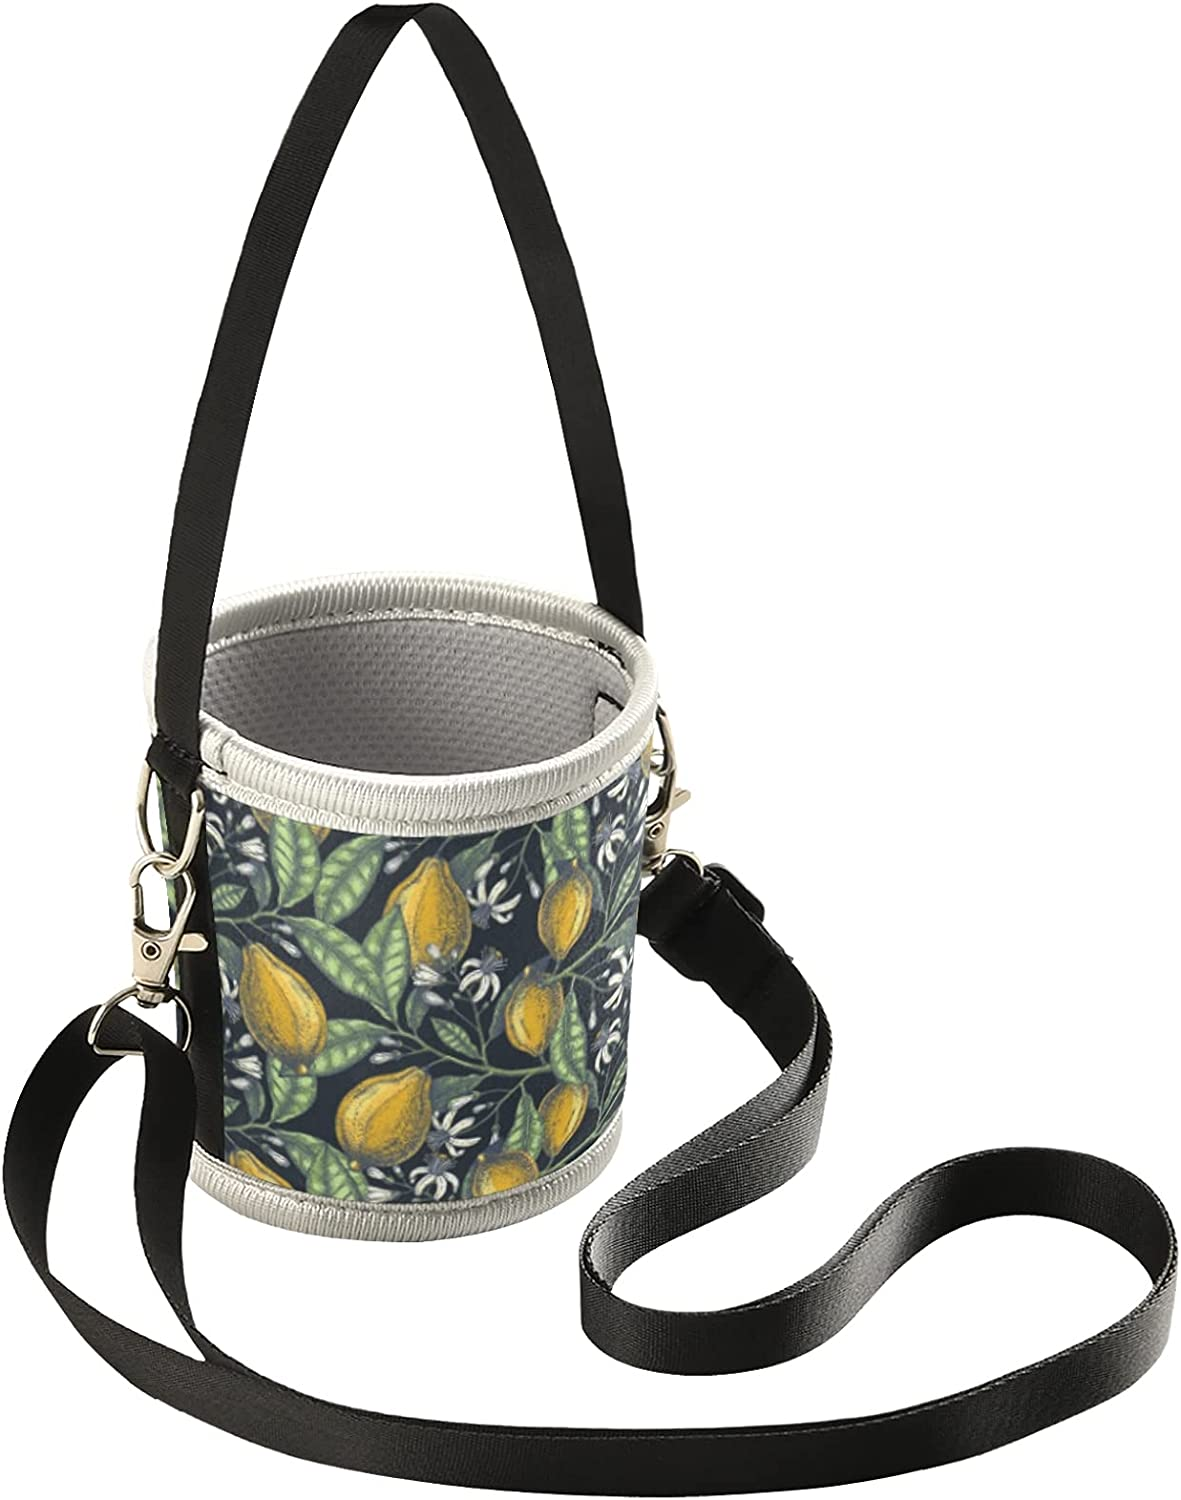 Iced Coffee Sleeve for Hot Cold Coffee Cup Citrus Lemons Reusabl